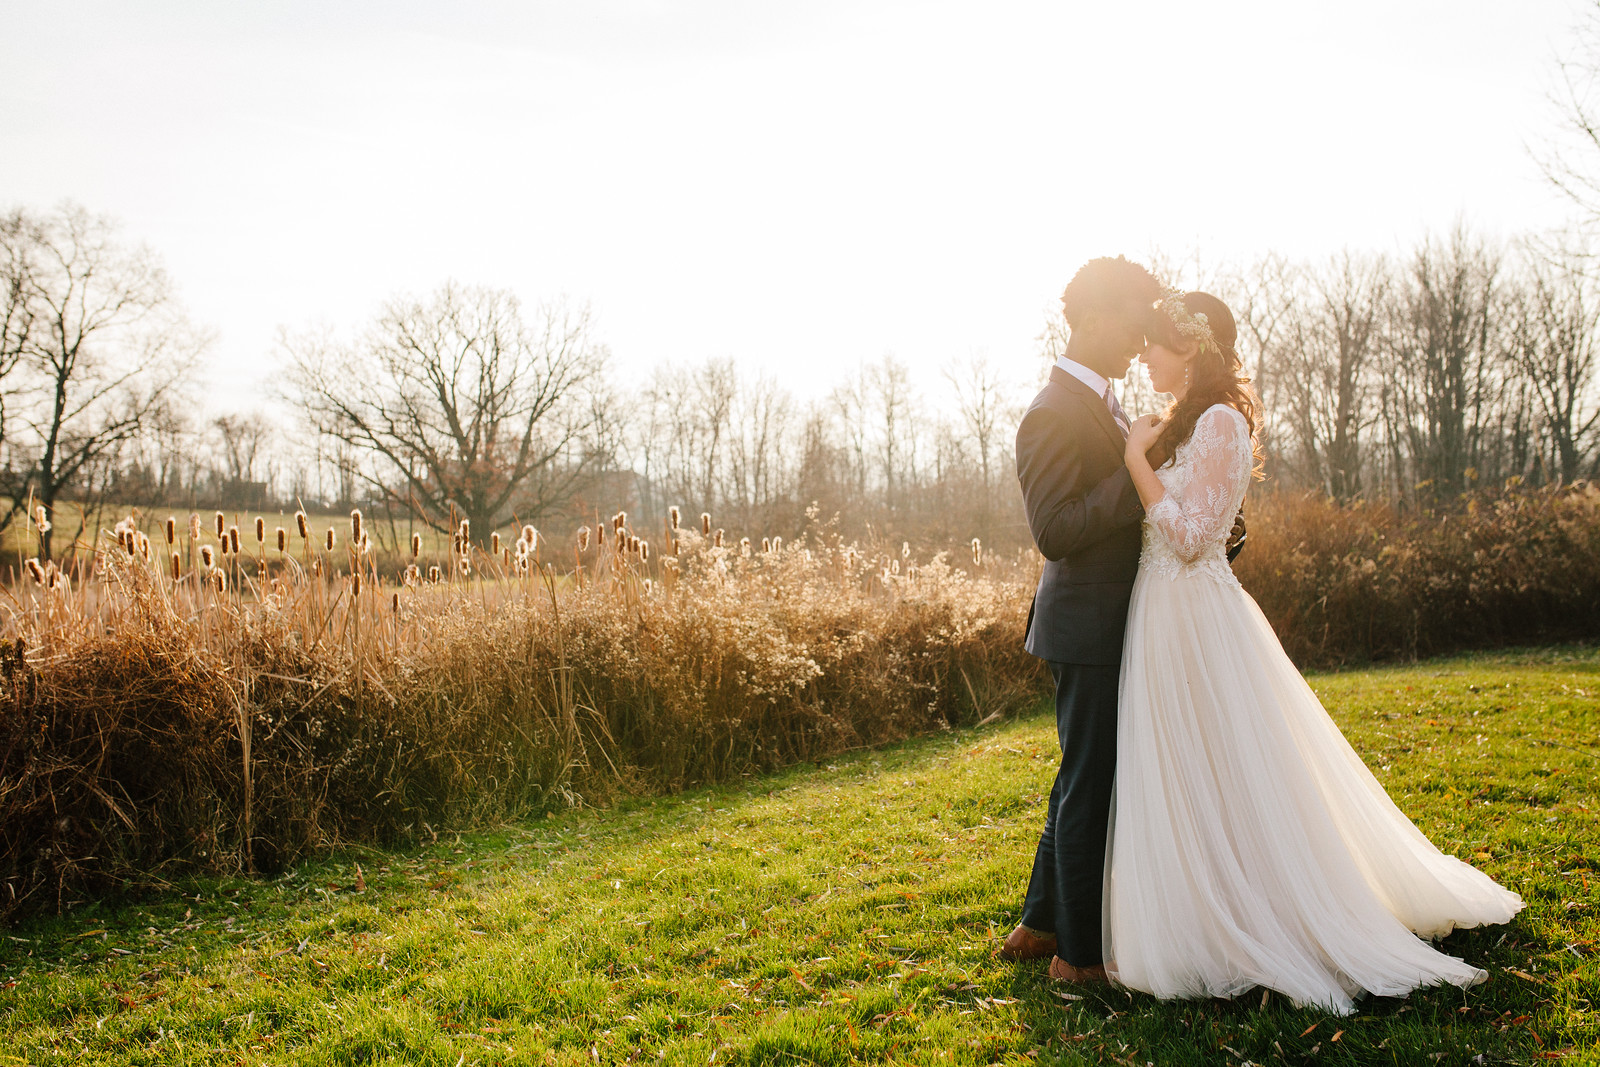 A Bride and groom standing in a meadow looking lovingly into each others eyes